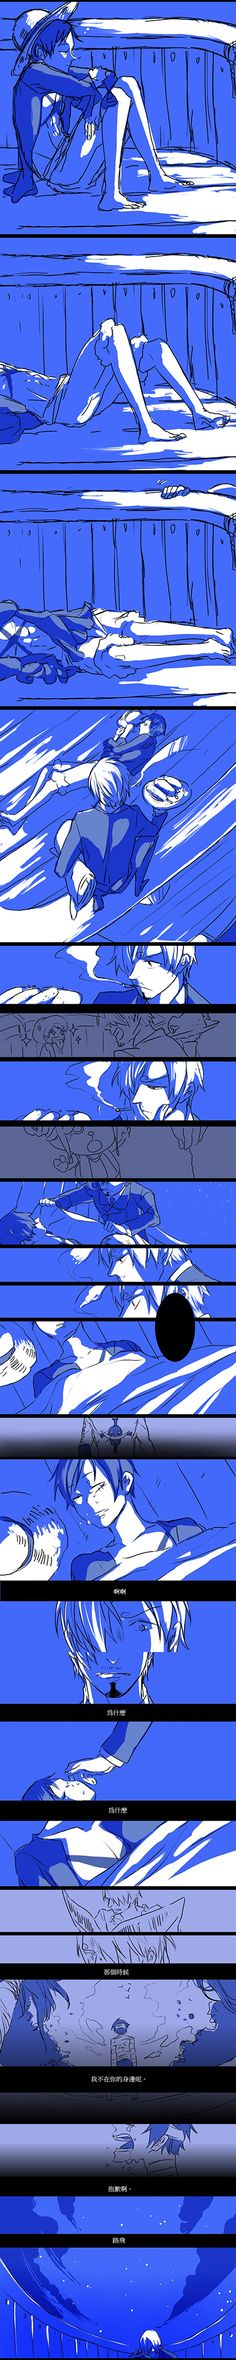 *sob* Trasnlation:  'Ah,ah.' 'Why' 'Why...' 'At that time ...' 'I was not by your side' 'I'm sorry' 'Luffy'